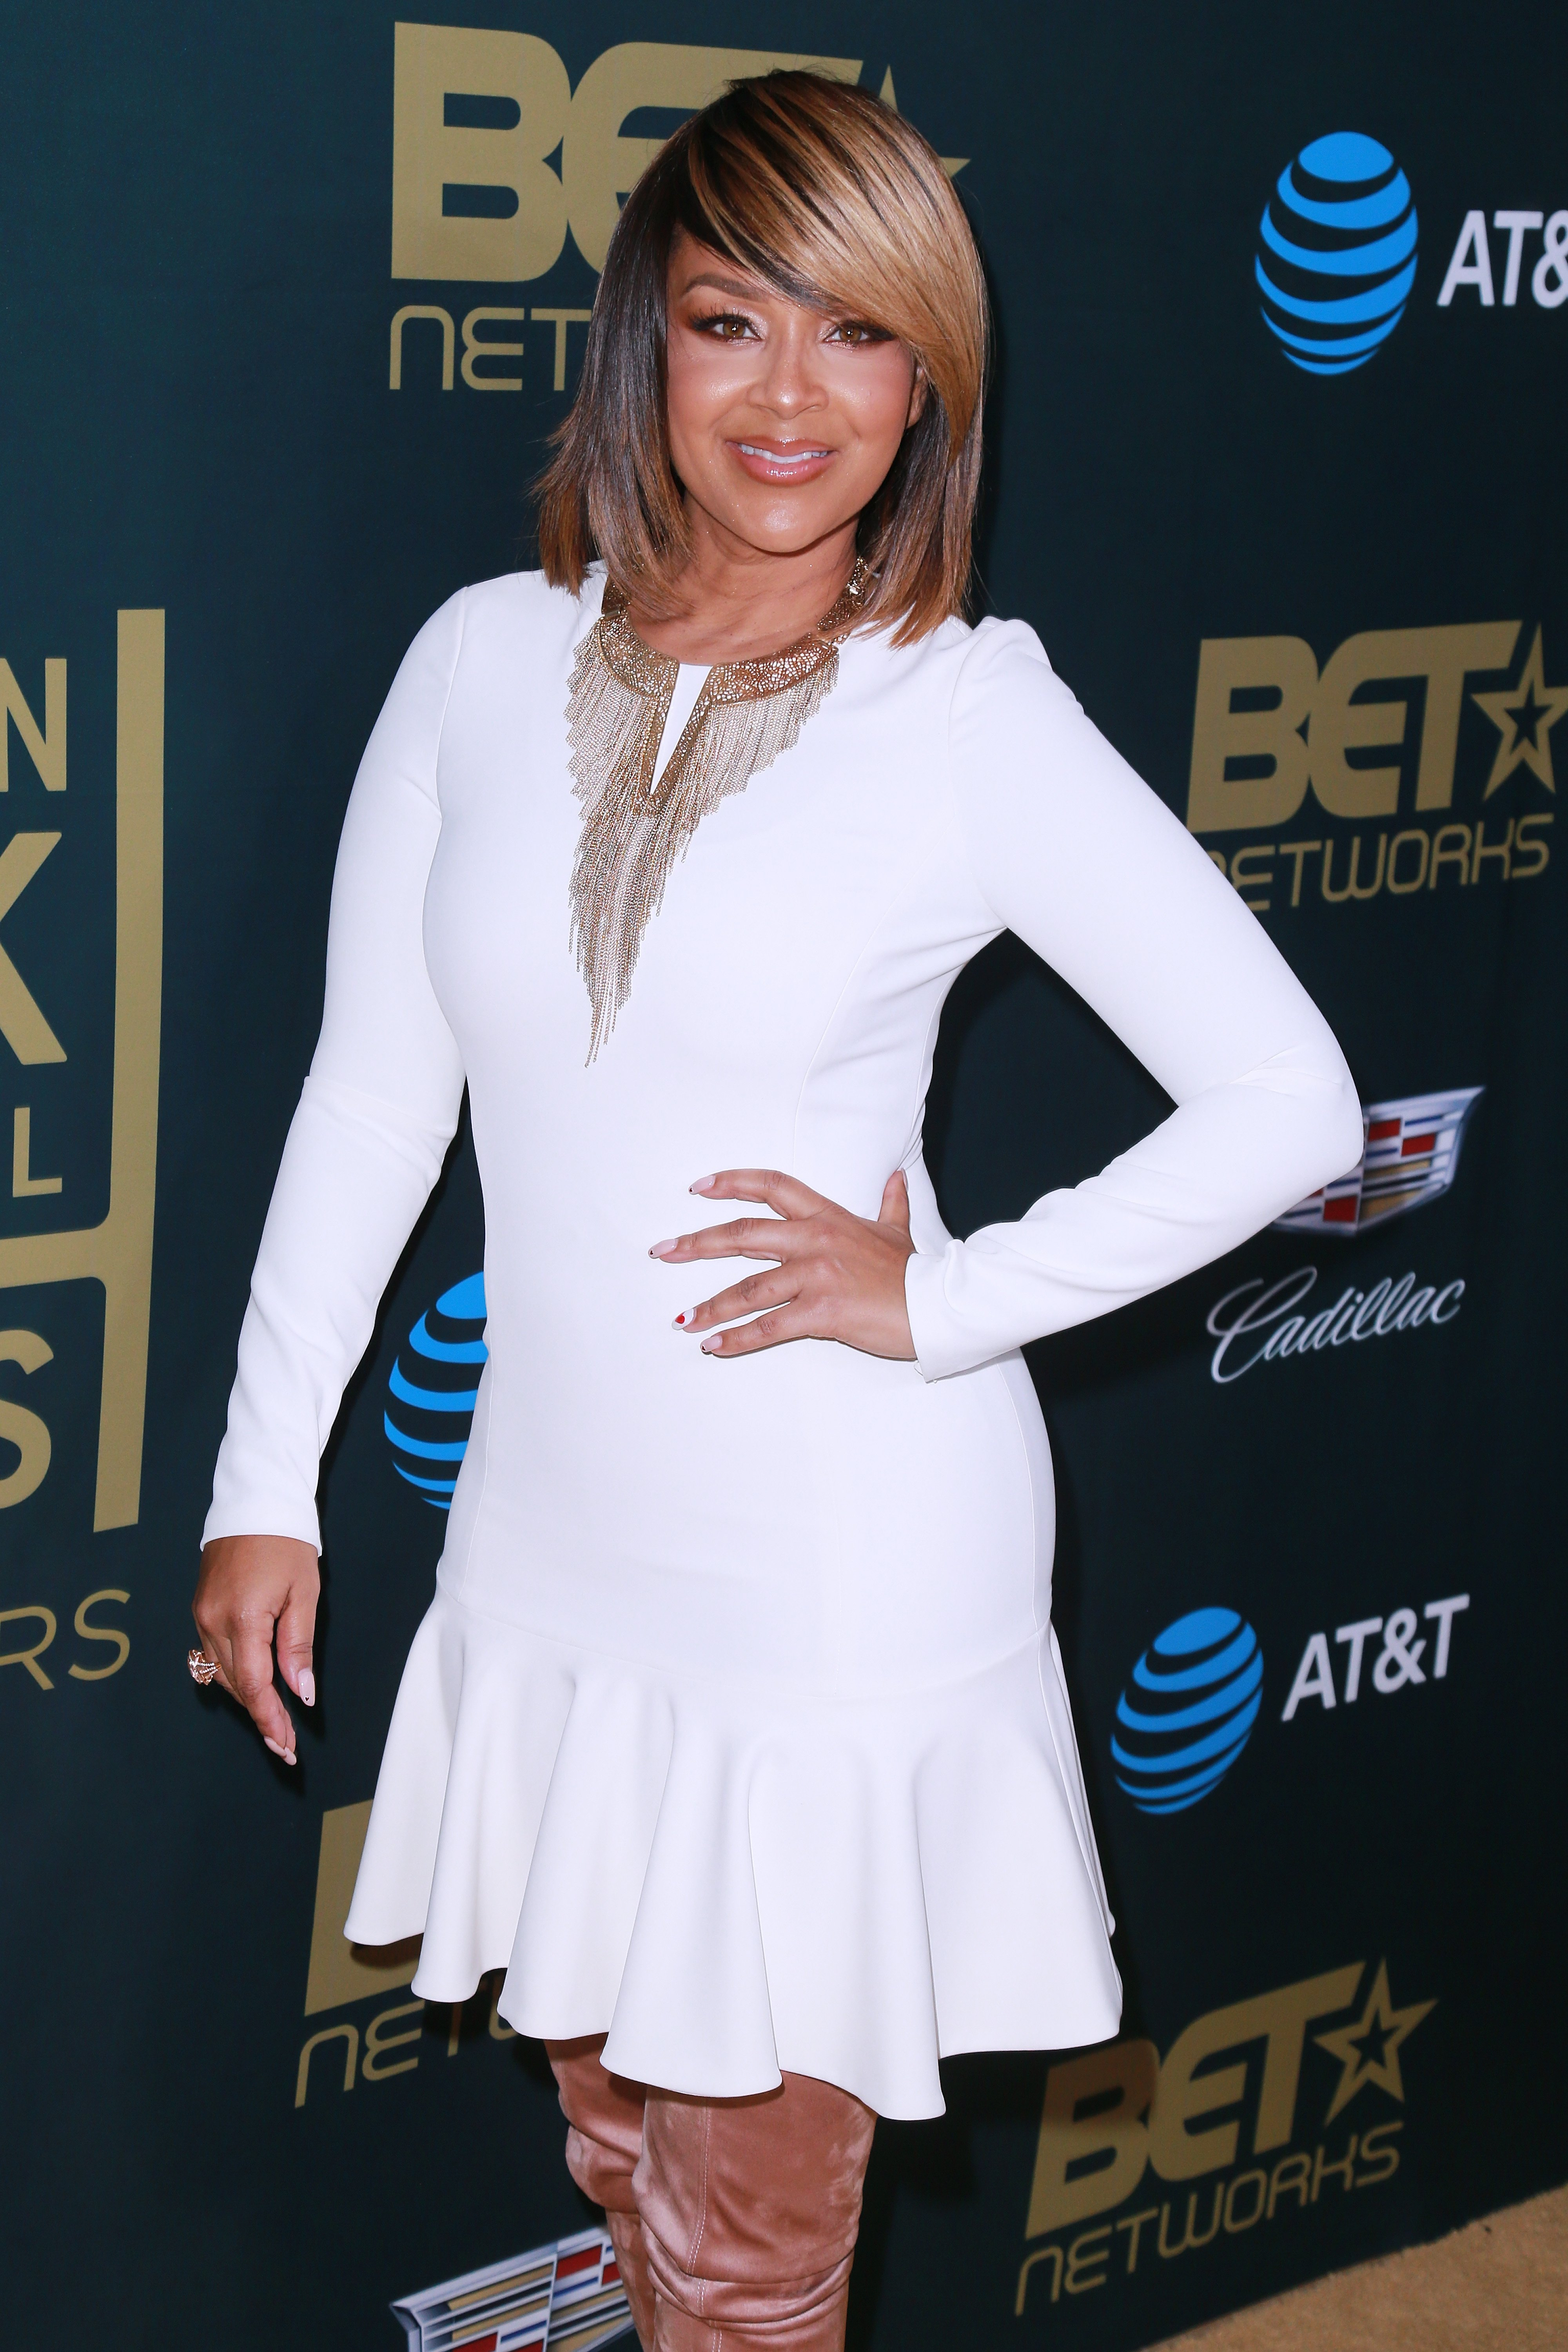 LisaRaye McCoy at the American Black Film Festival Honors Awards on Feb. 25, 2018 in California | Photo: Getty Images